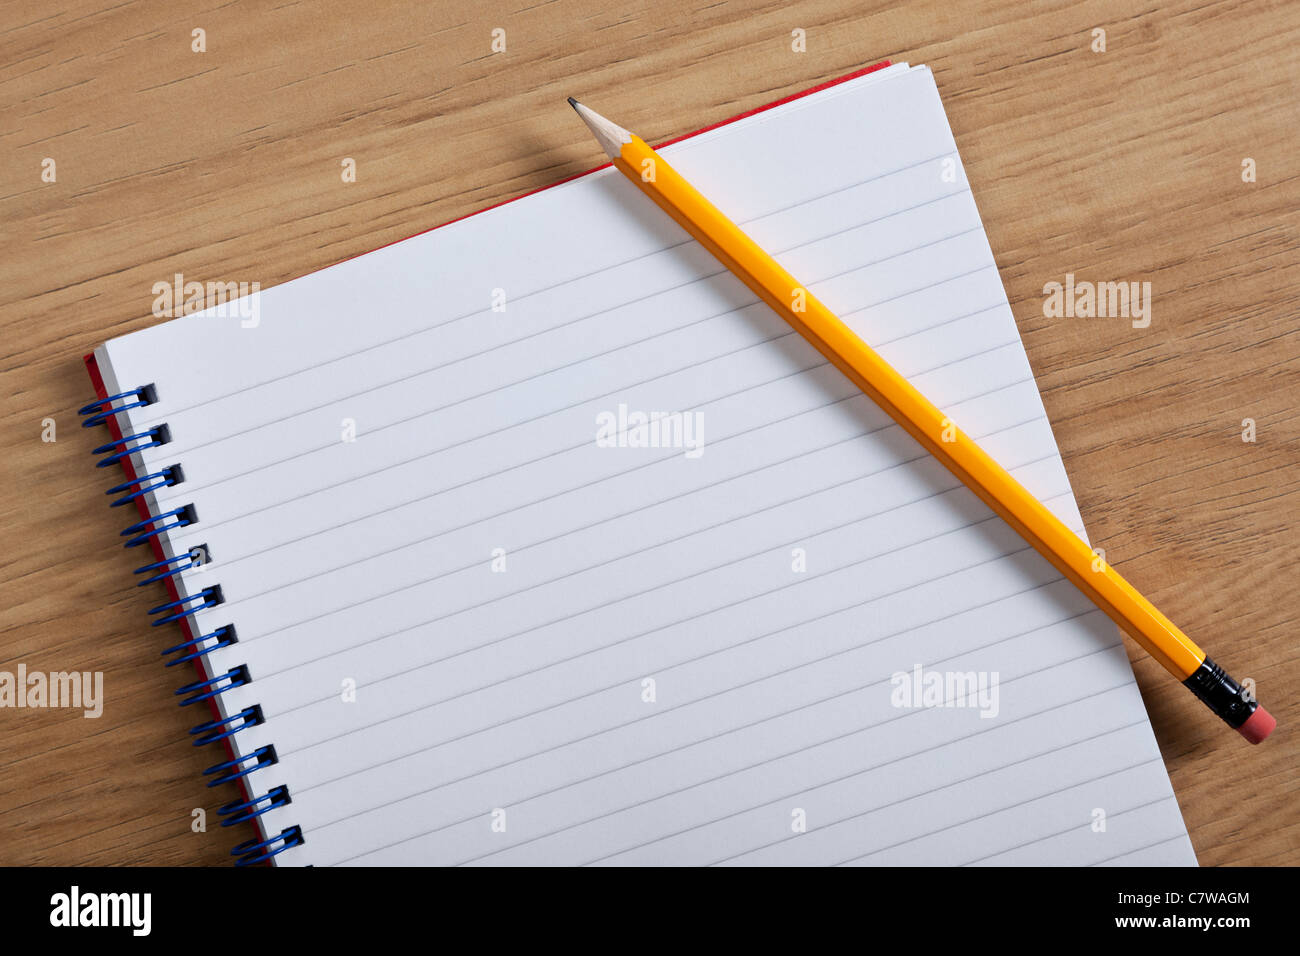 Photo of a blank ruled notepad and pencil on a desk, add your own copy. - Stock Image